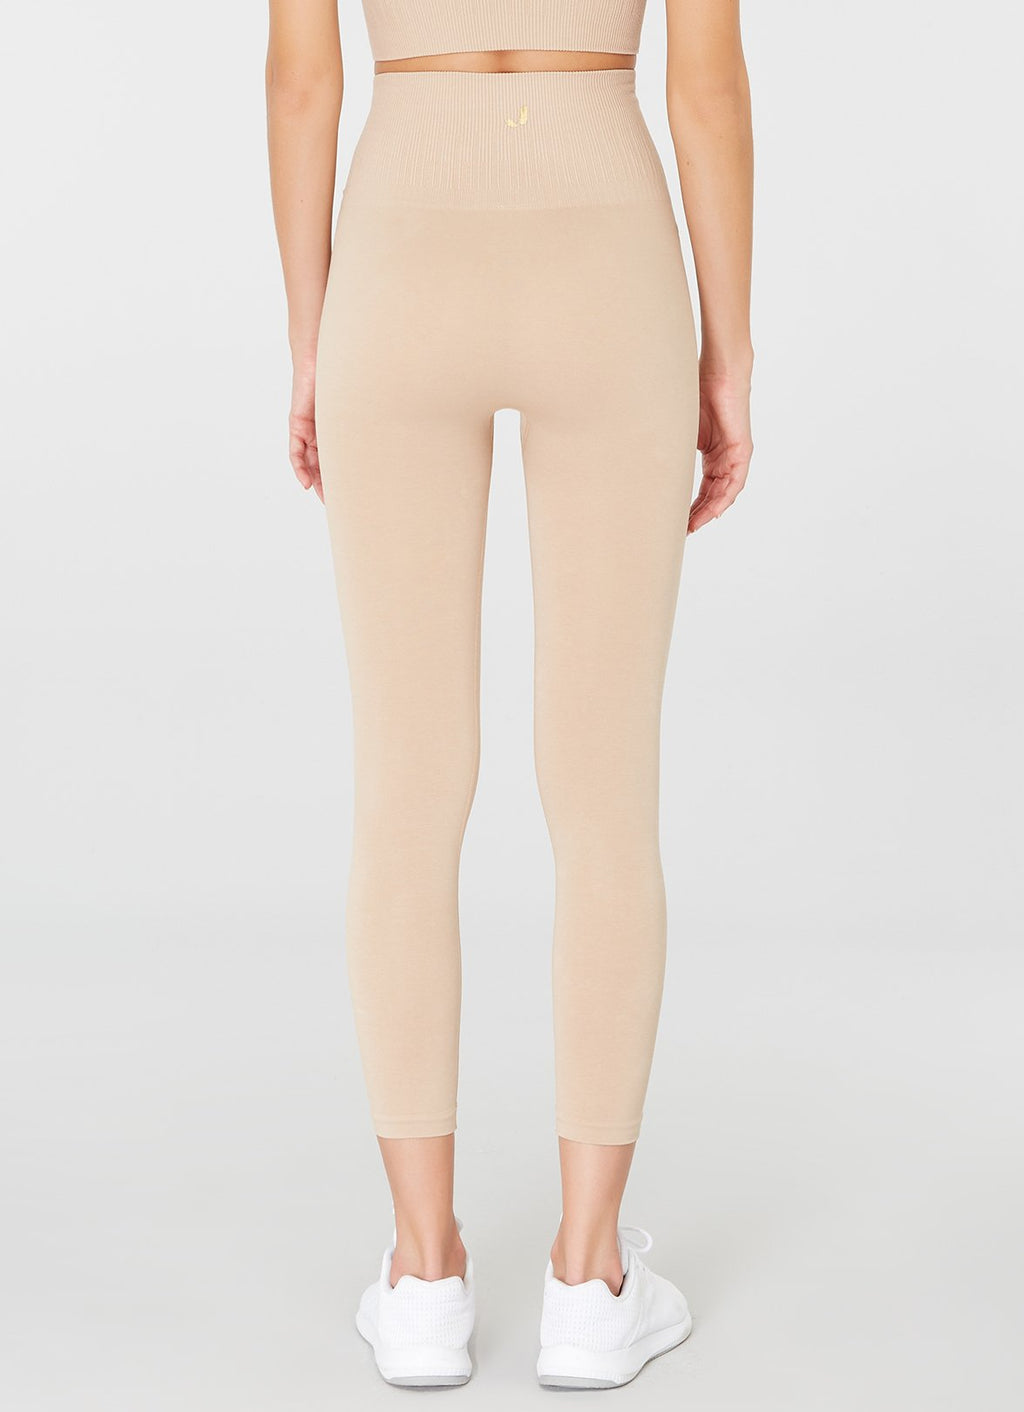 Jerf Luz Beige Leggings